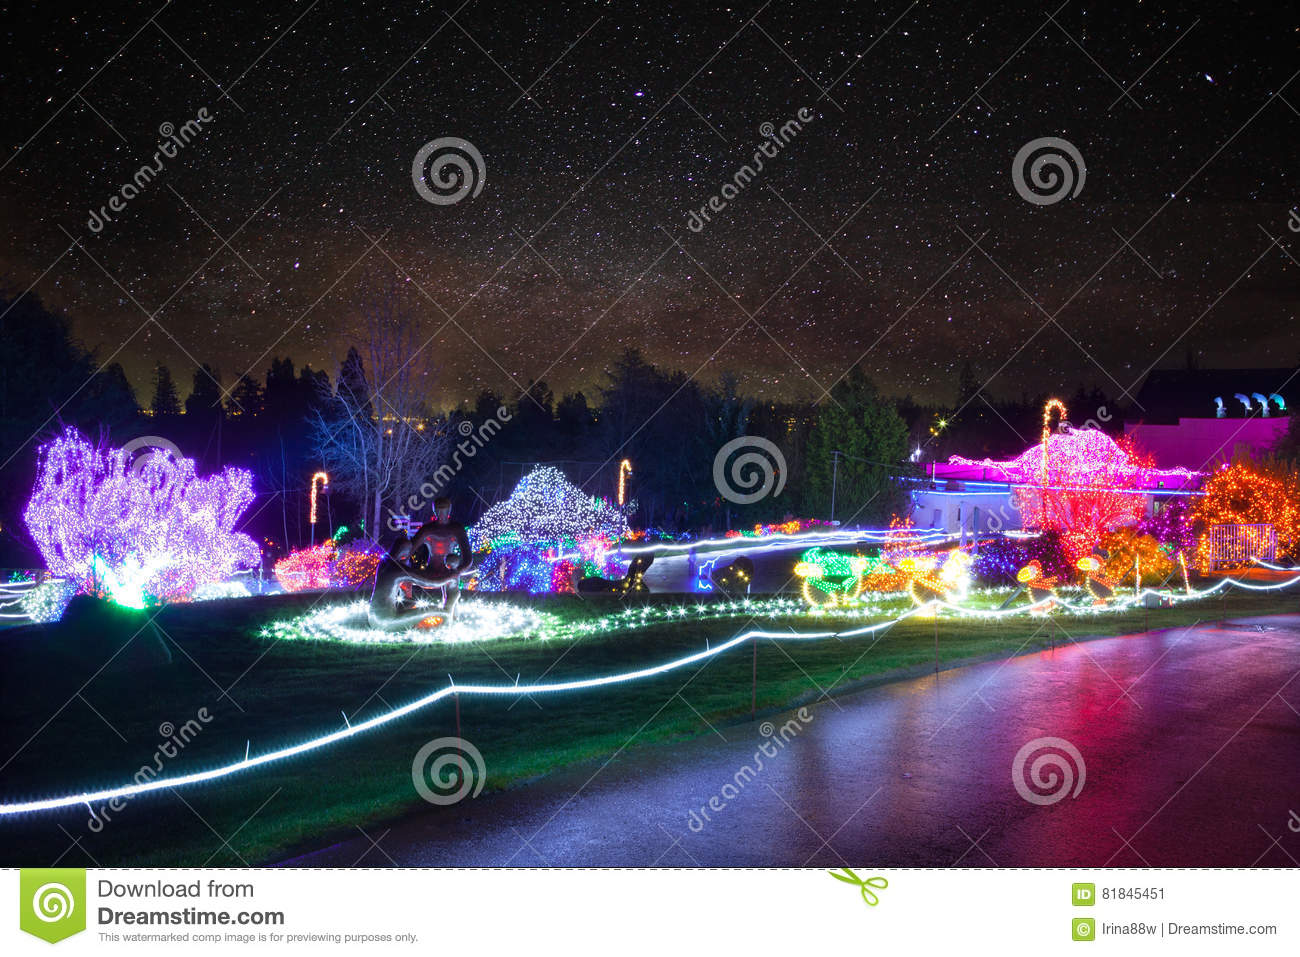 Zoolights At The Point Defiance Zoo In Tacoma Wa Stock Image Image Of Seasonal Festival 81845451